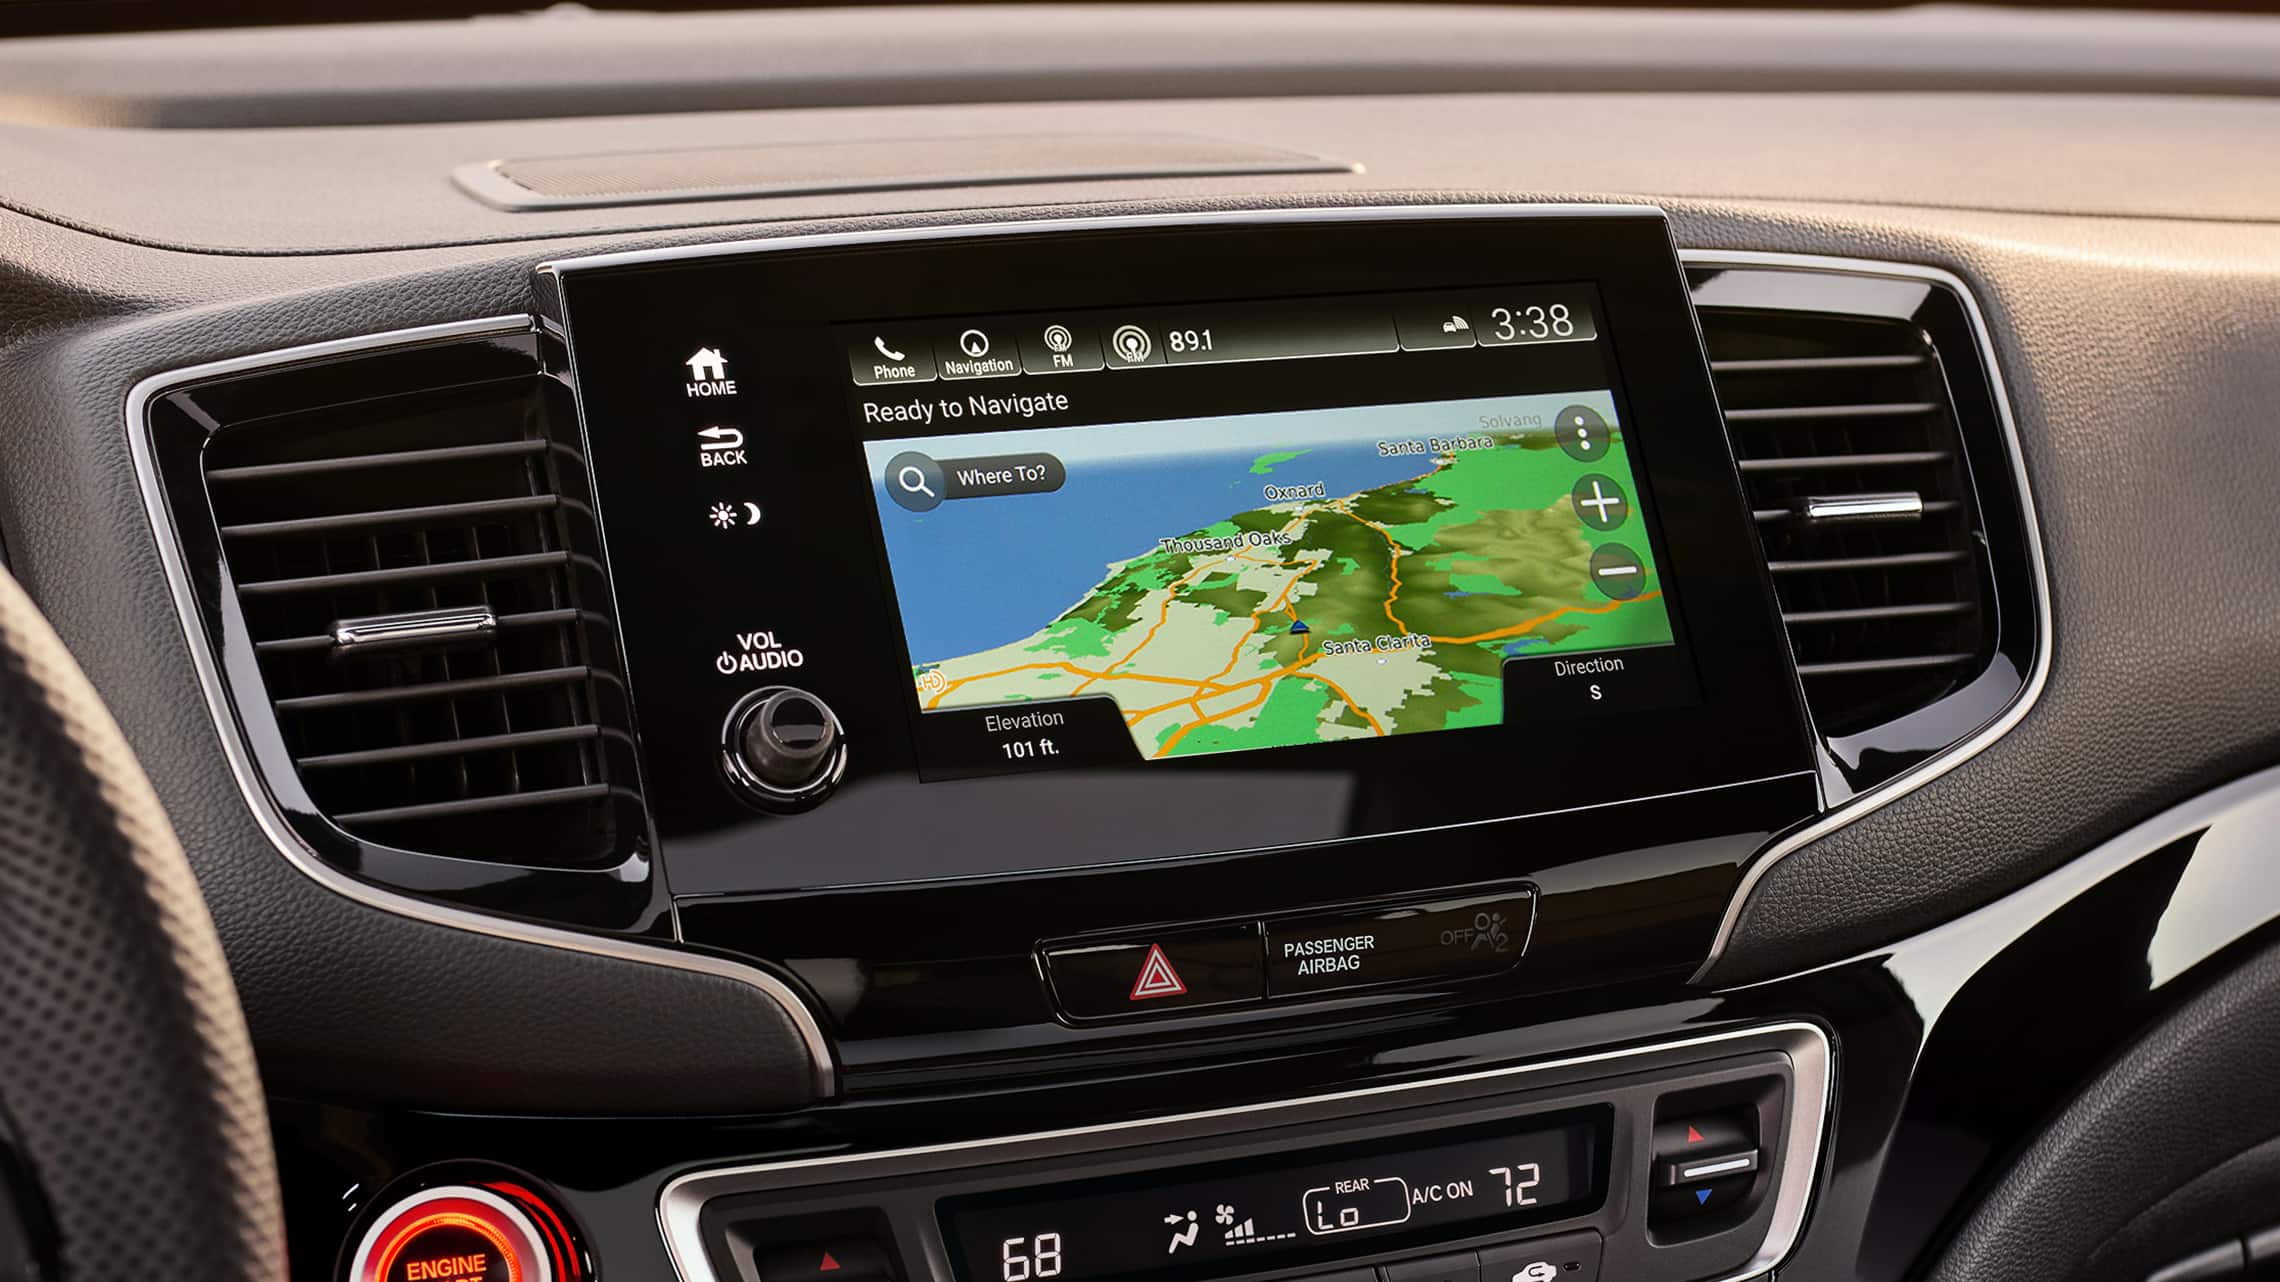 Detail view of the Honda Satellite-Linked Navigation System™ on the Display Audio touch-screen in the 2021 Honda Passport.